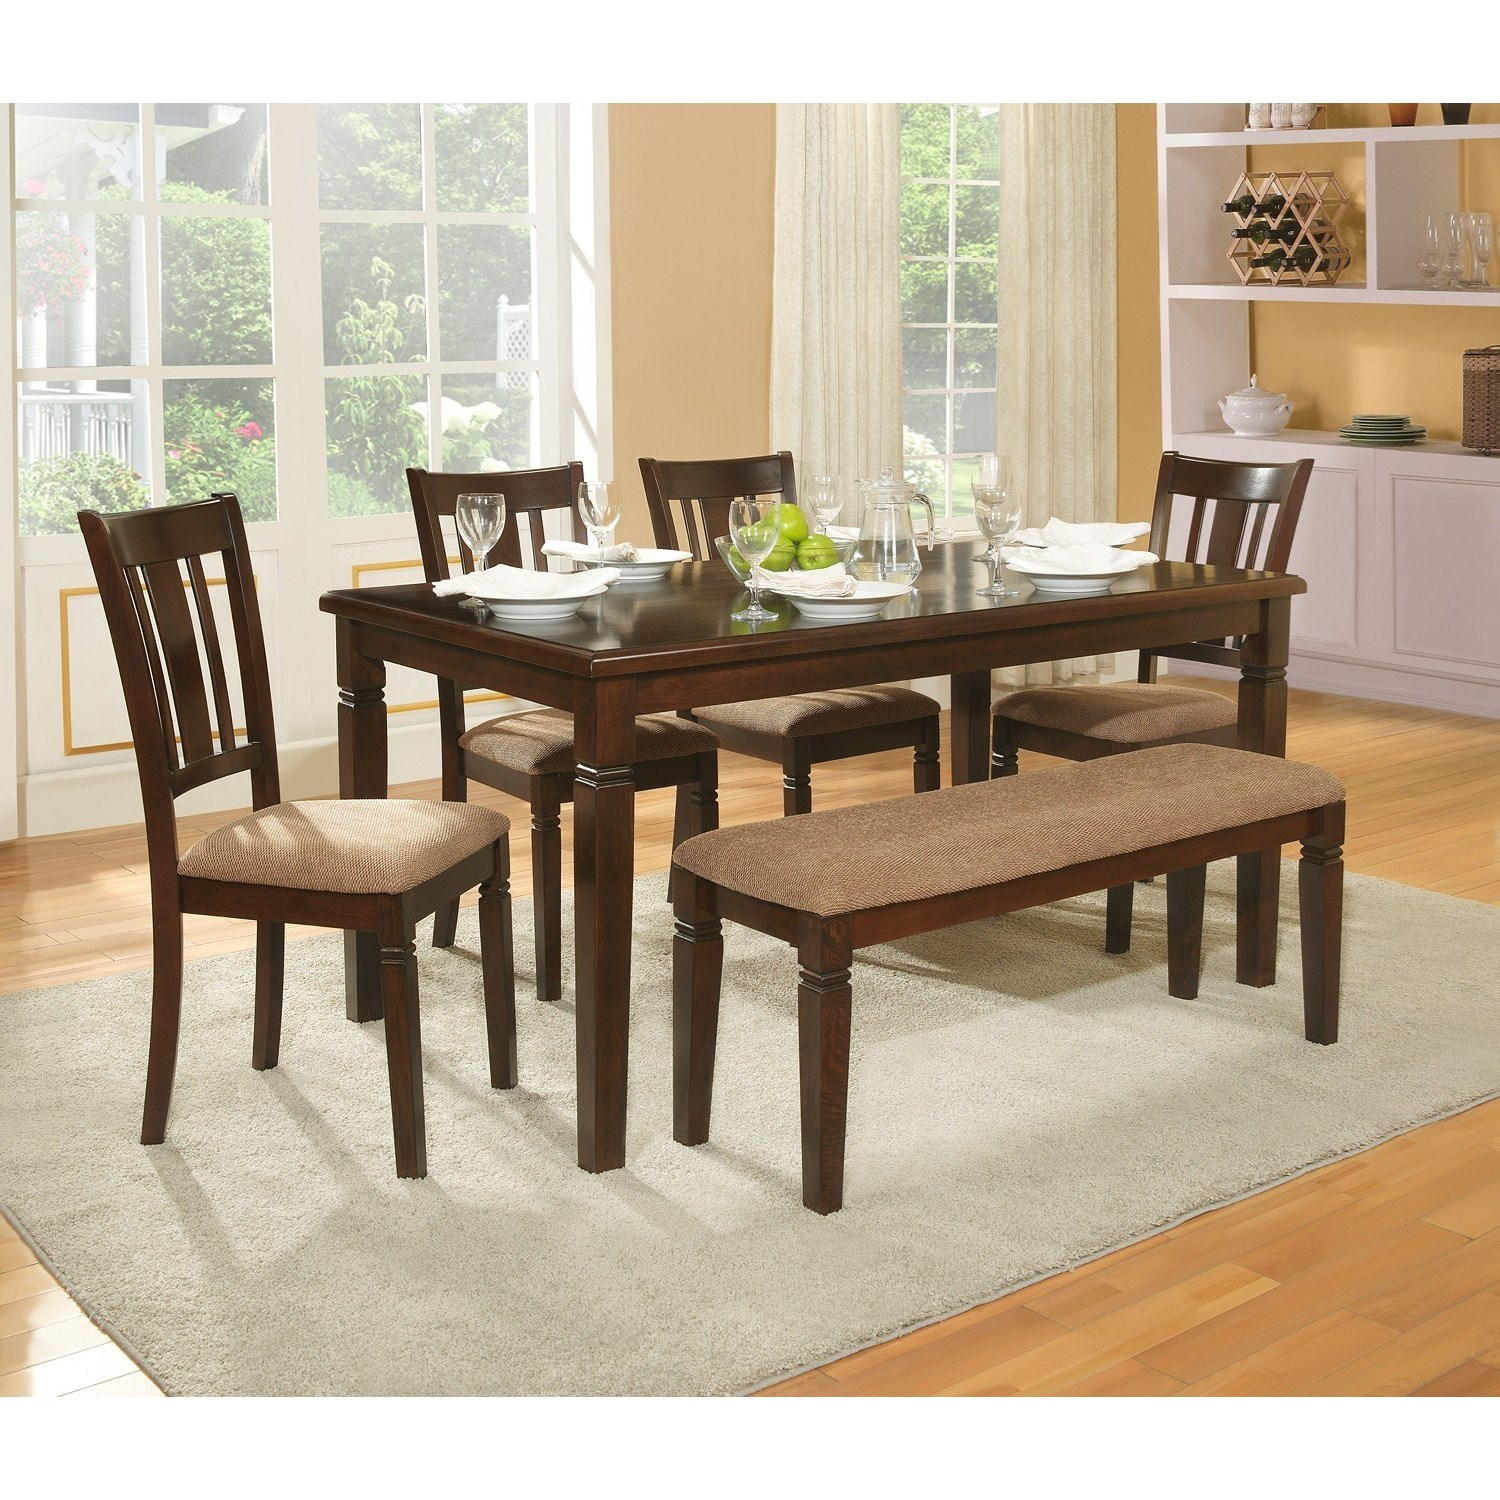 Devlin Table and Chair Set with Bench by Homelegance at Simply Home by Lindy's